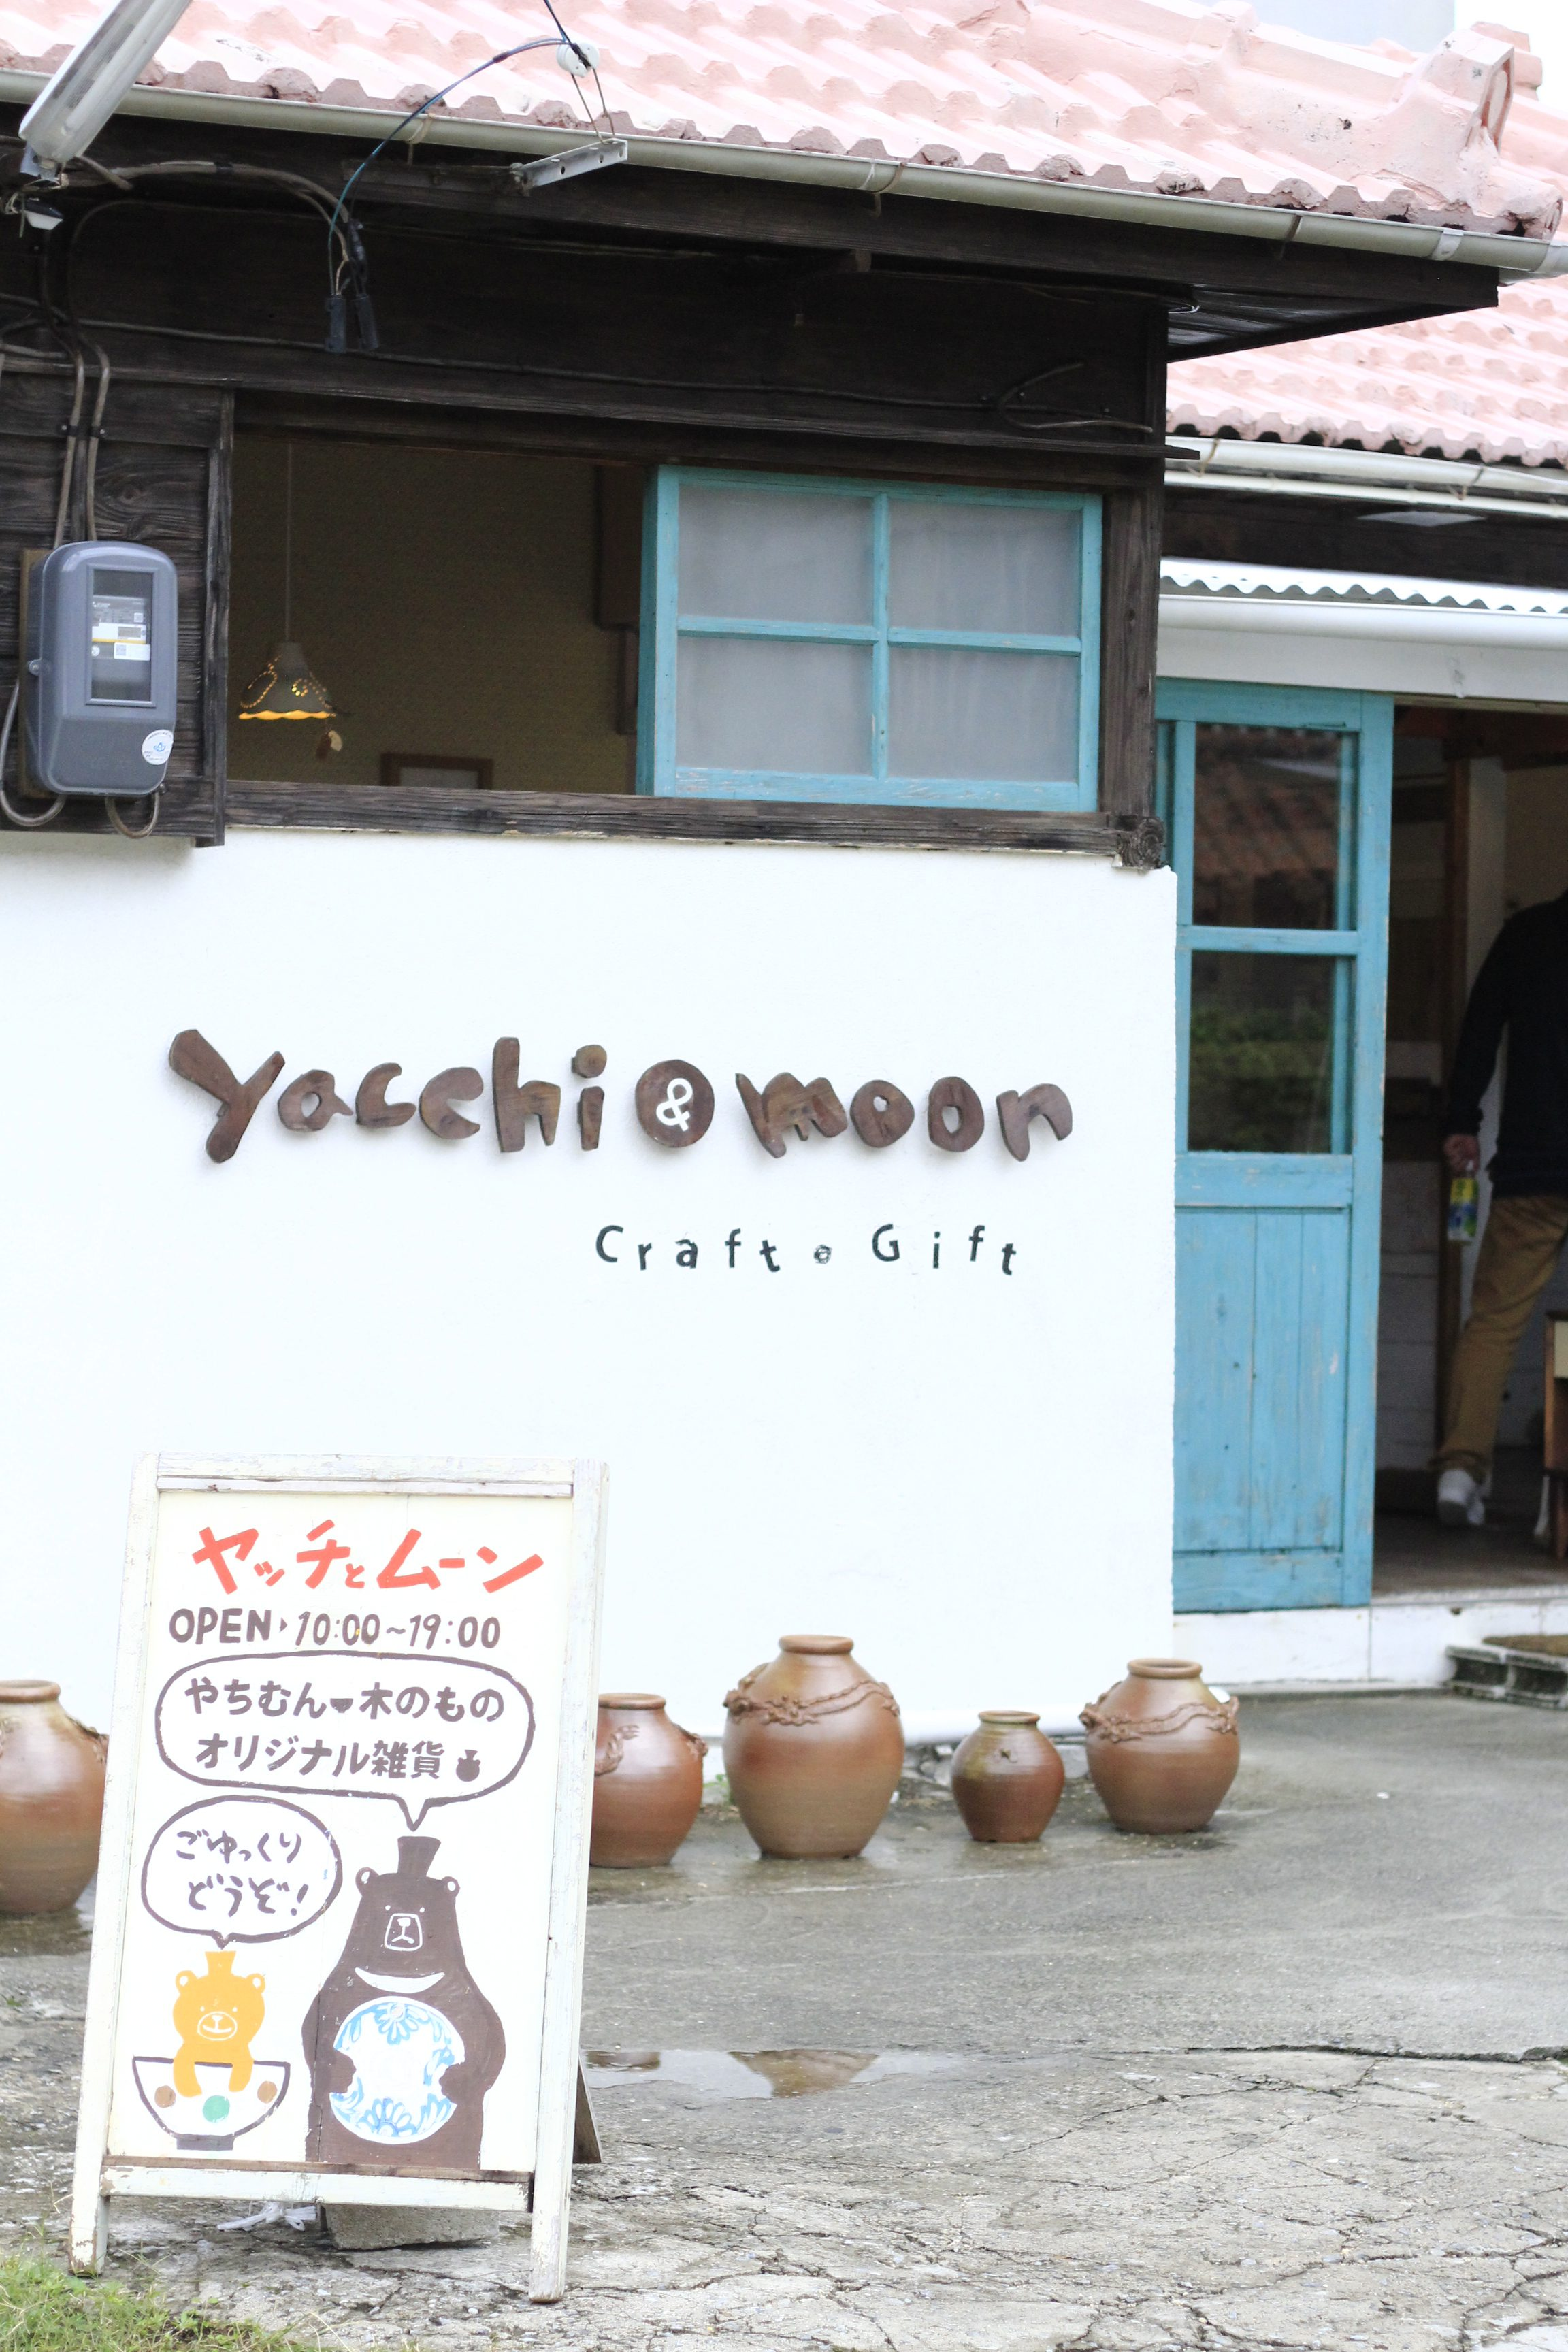 craft・gift yacchi&moon(クラフト・ギフト ヤッチとムーン)